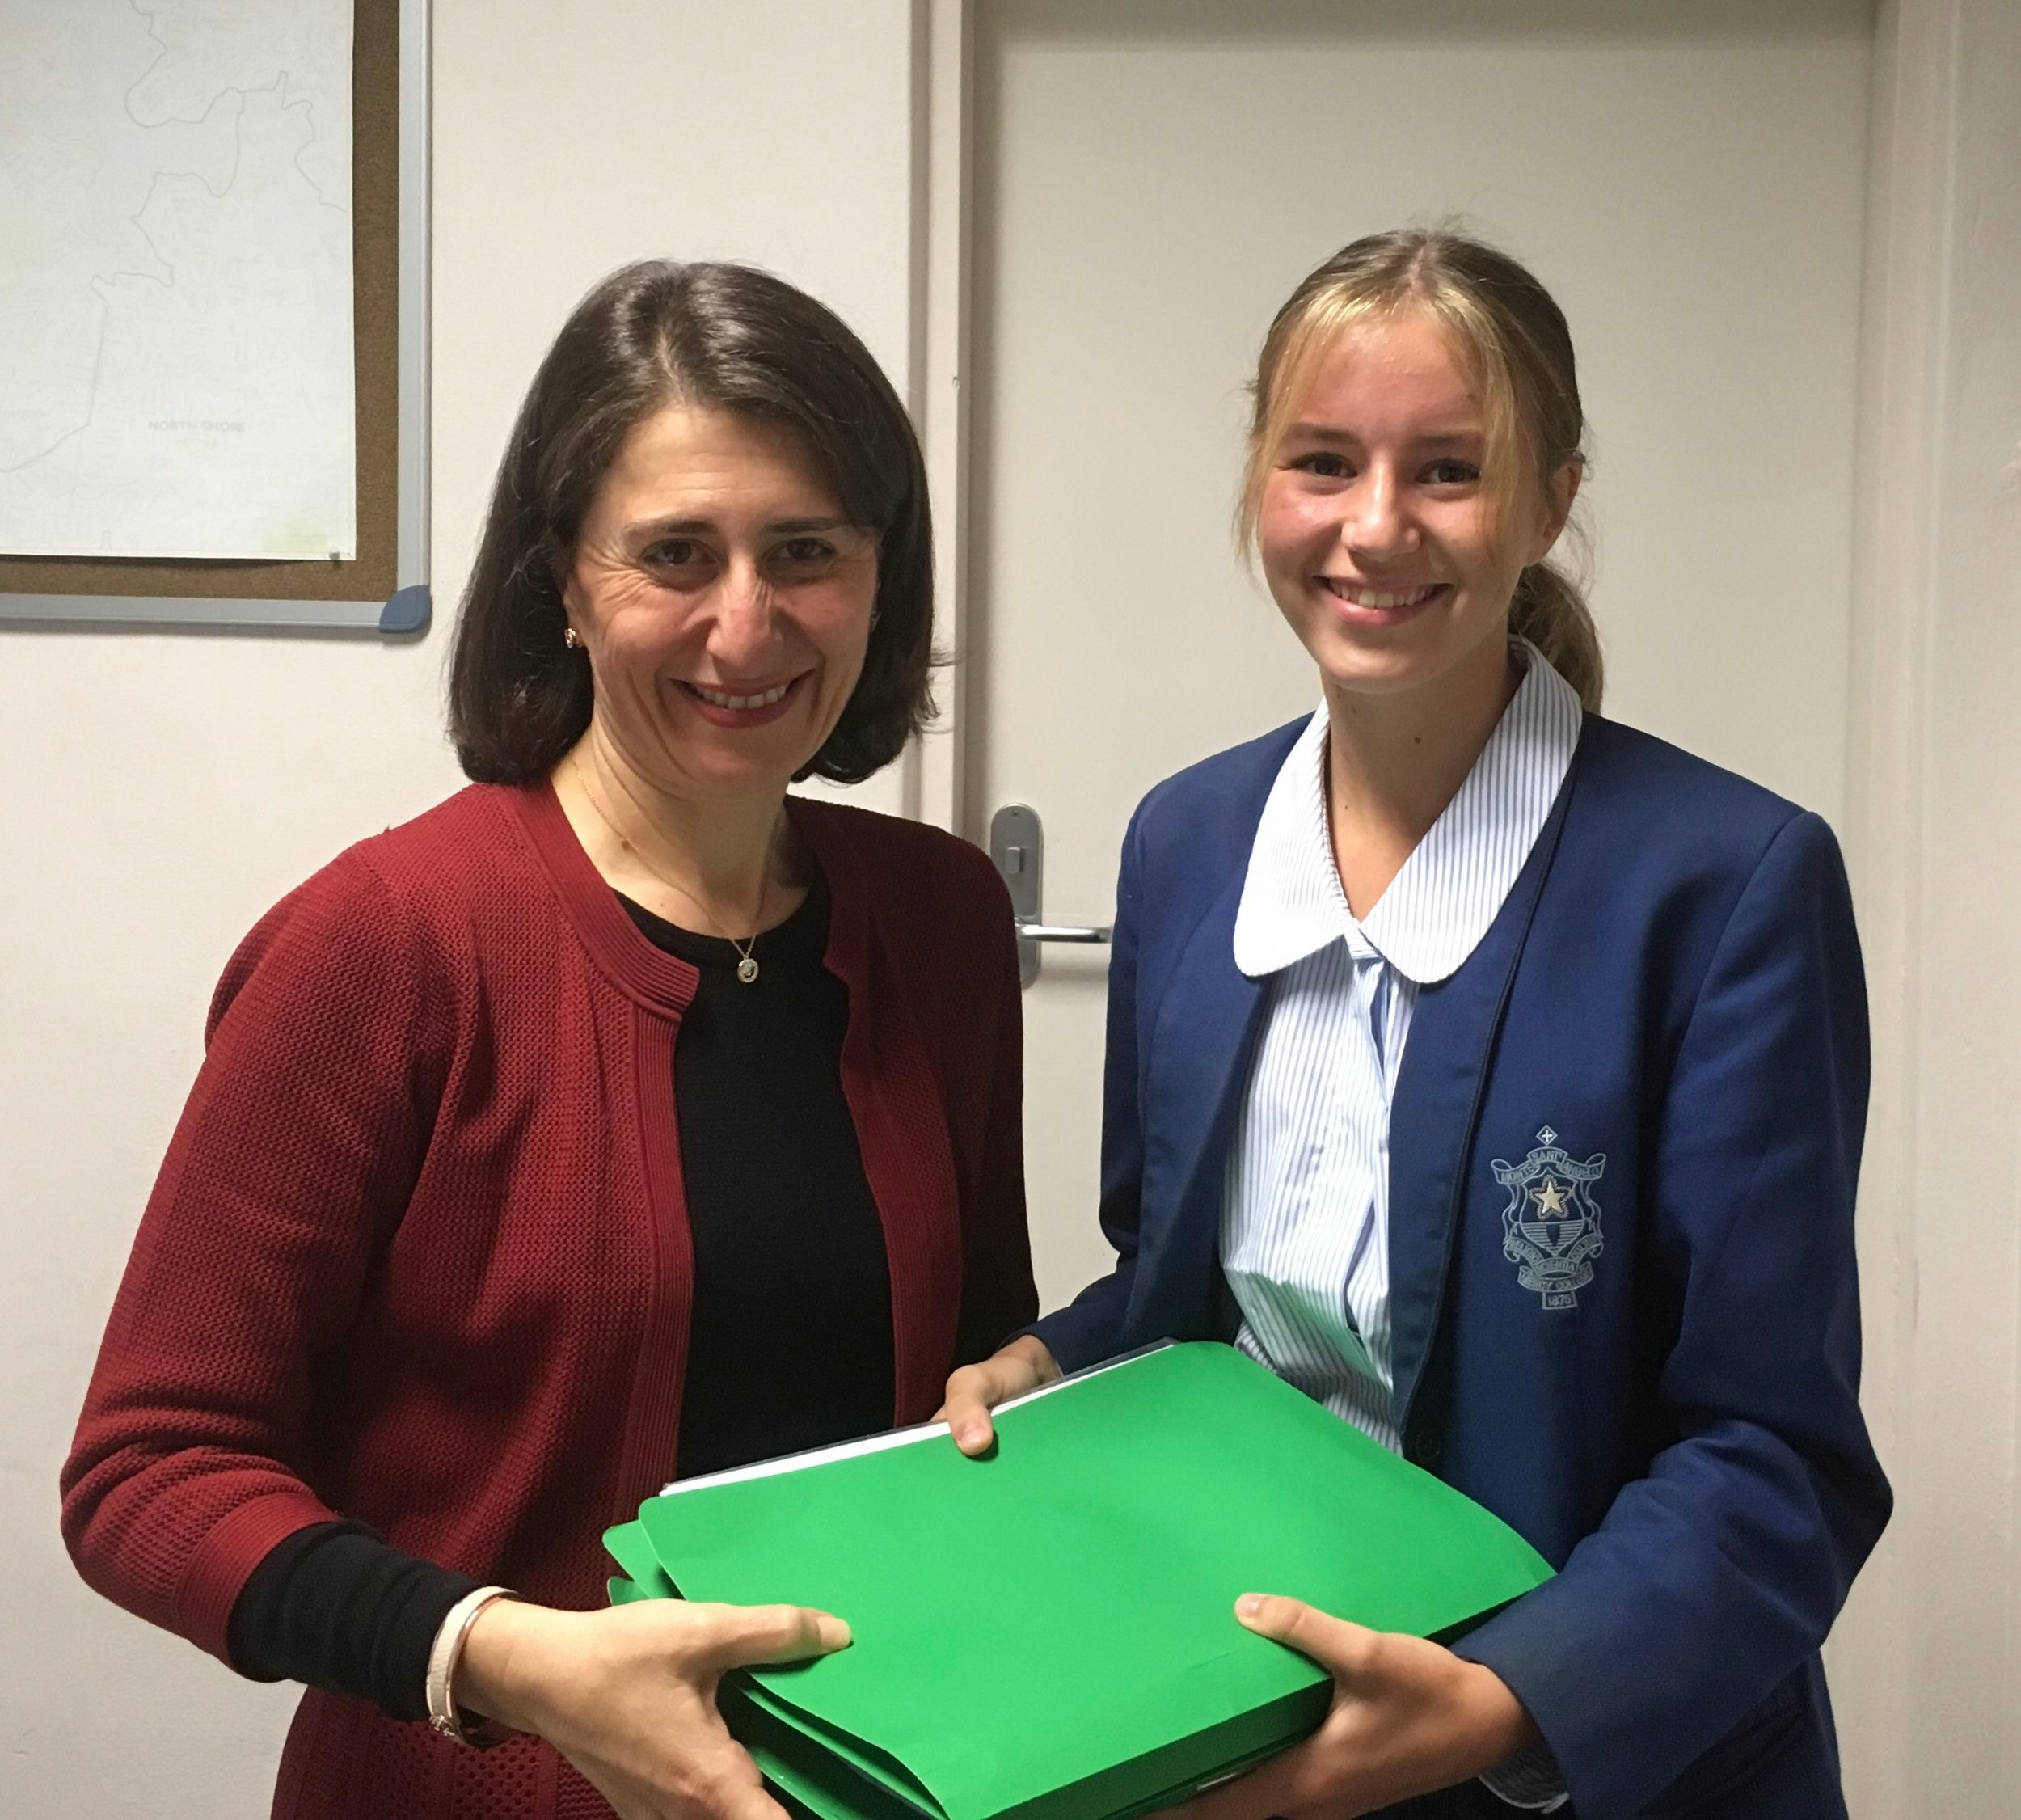 Sophia Handing the NSW Premier over 10,000 Hand Written Signatures on a Petition to Ban Plastic Bags in NSW